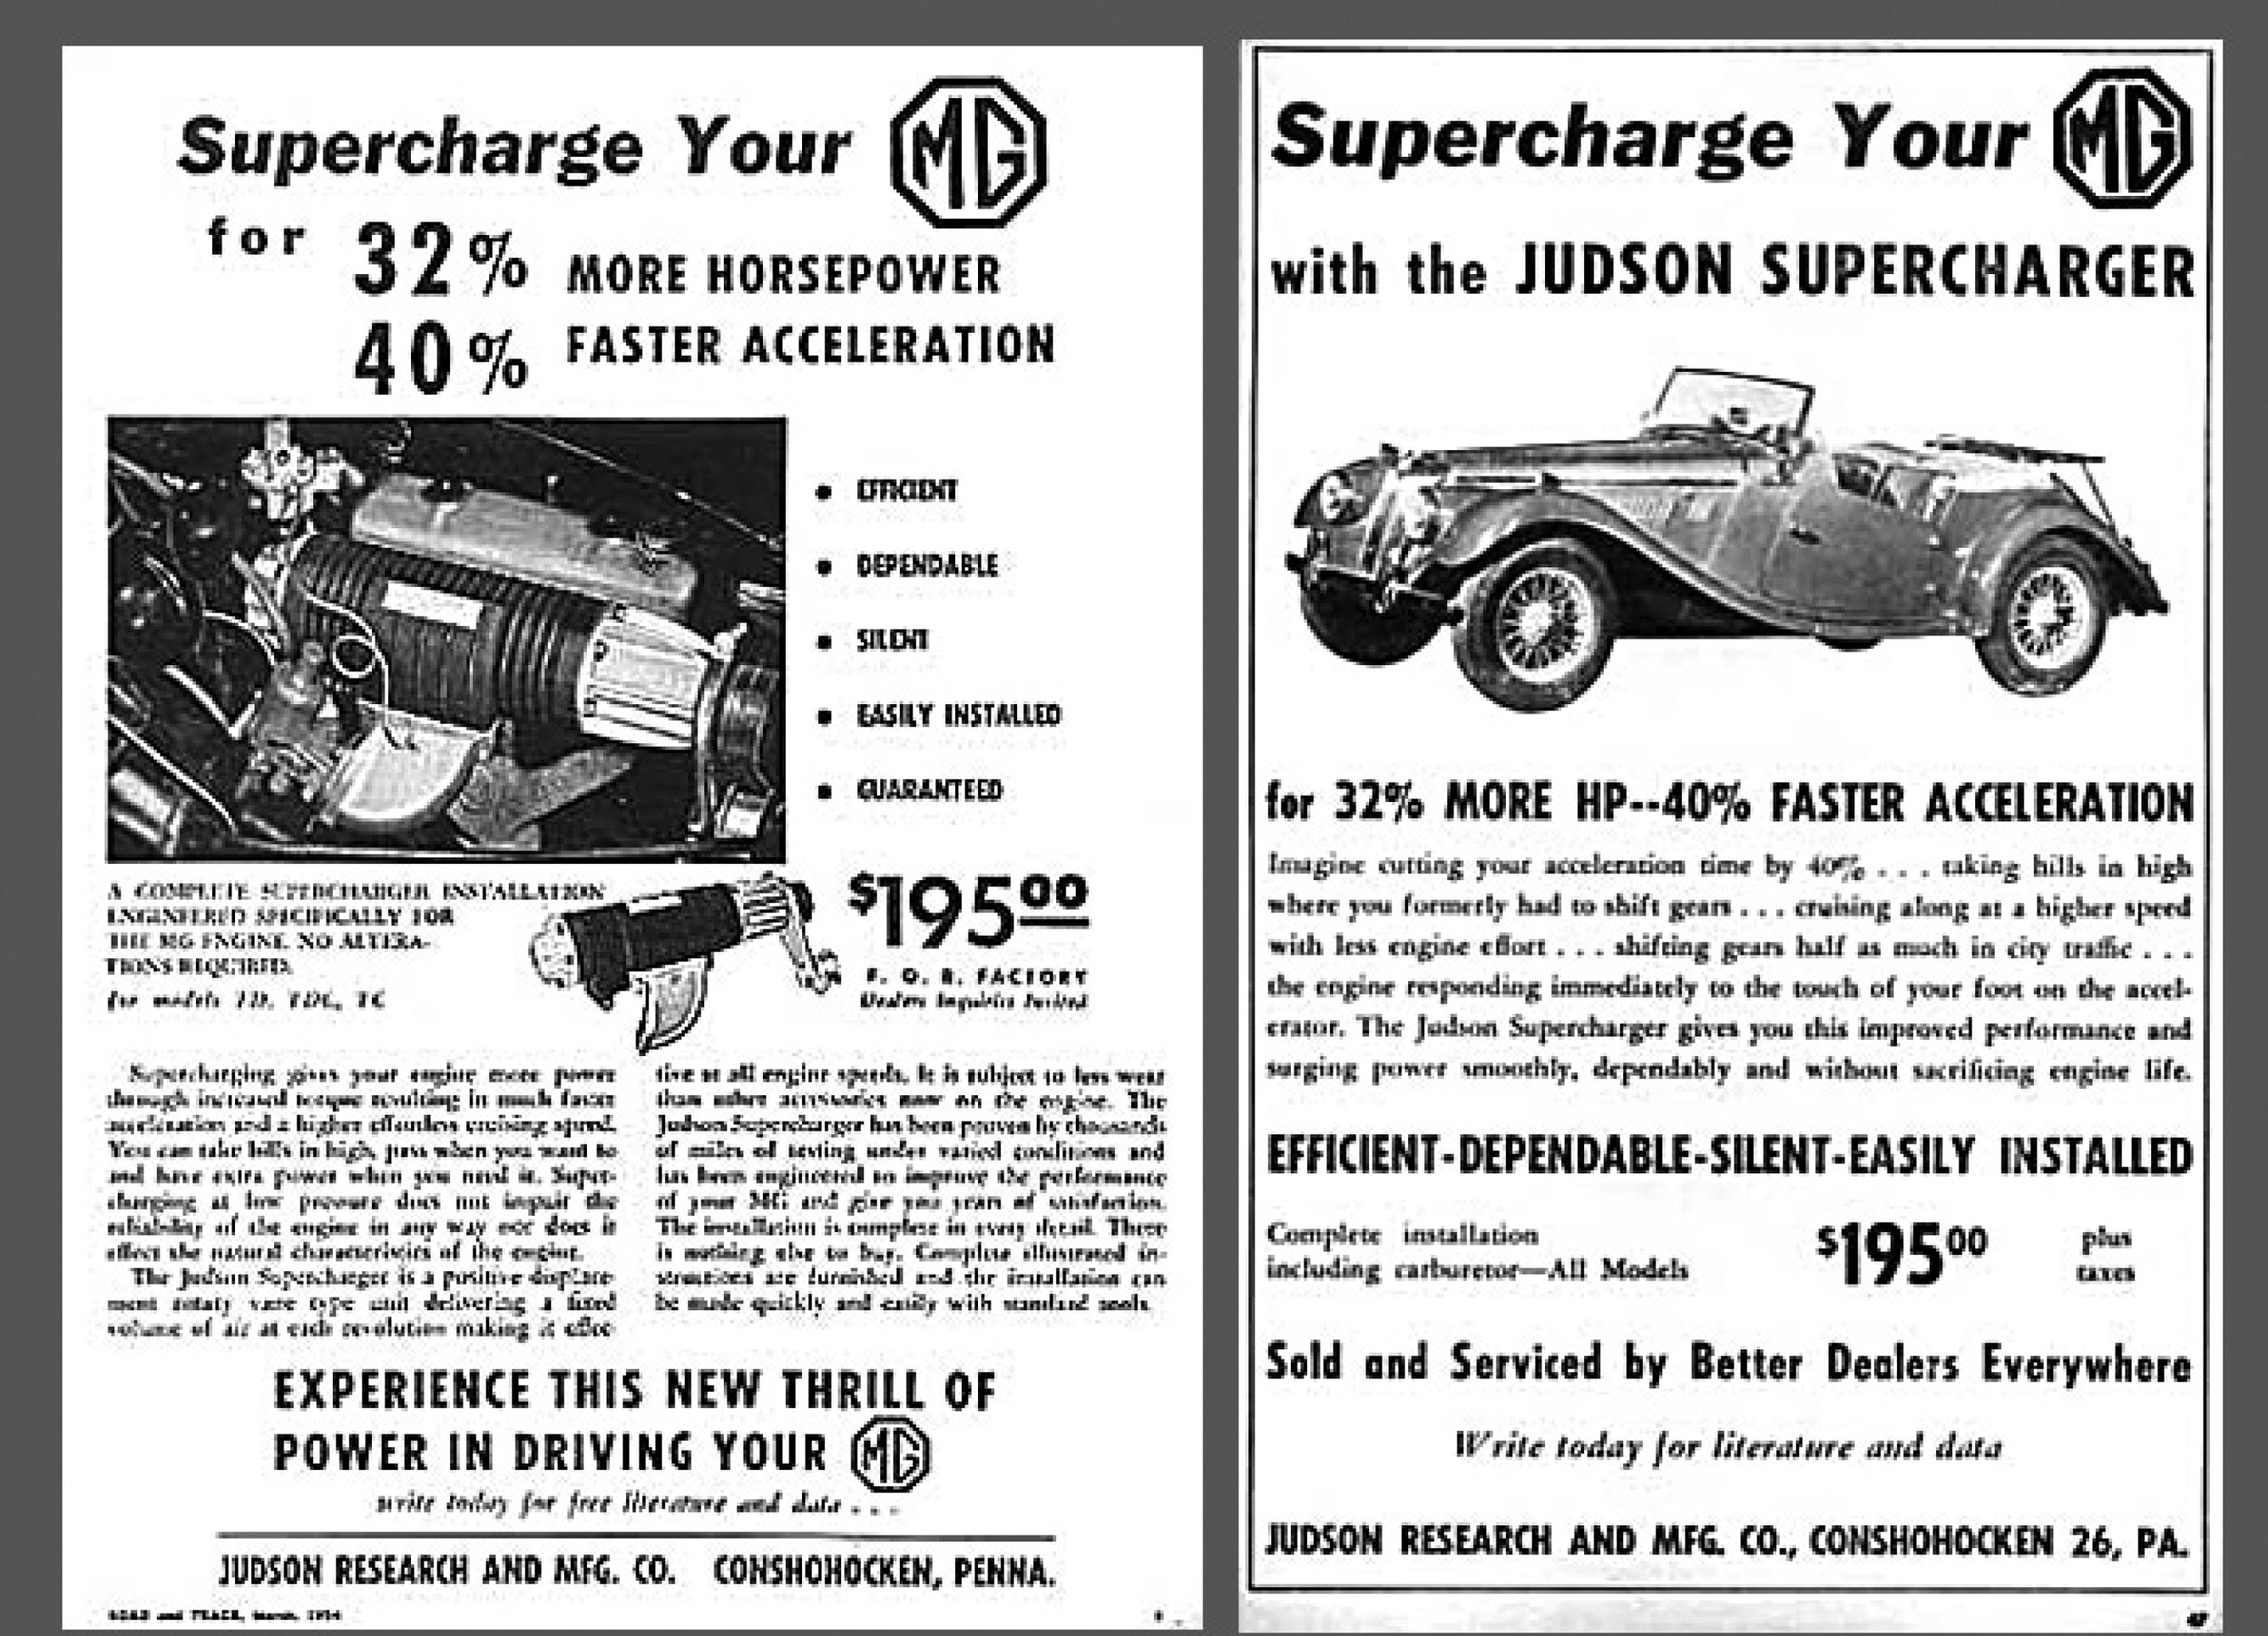 Judson MG supercharger ad